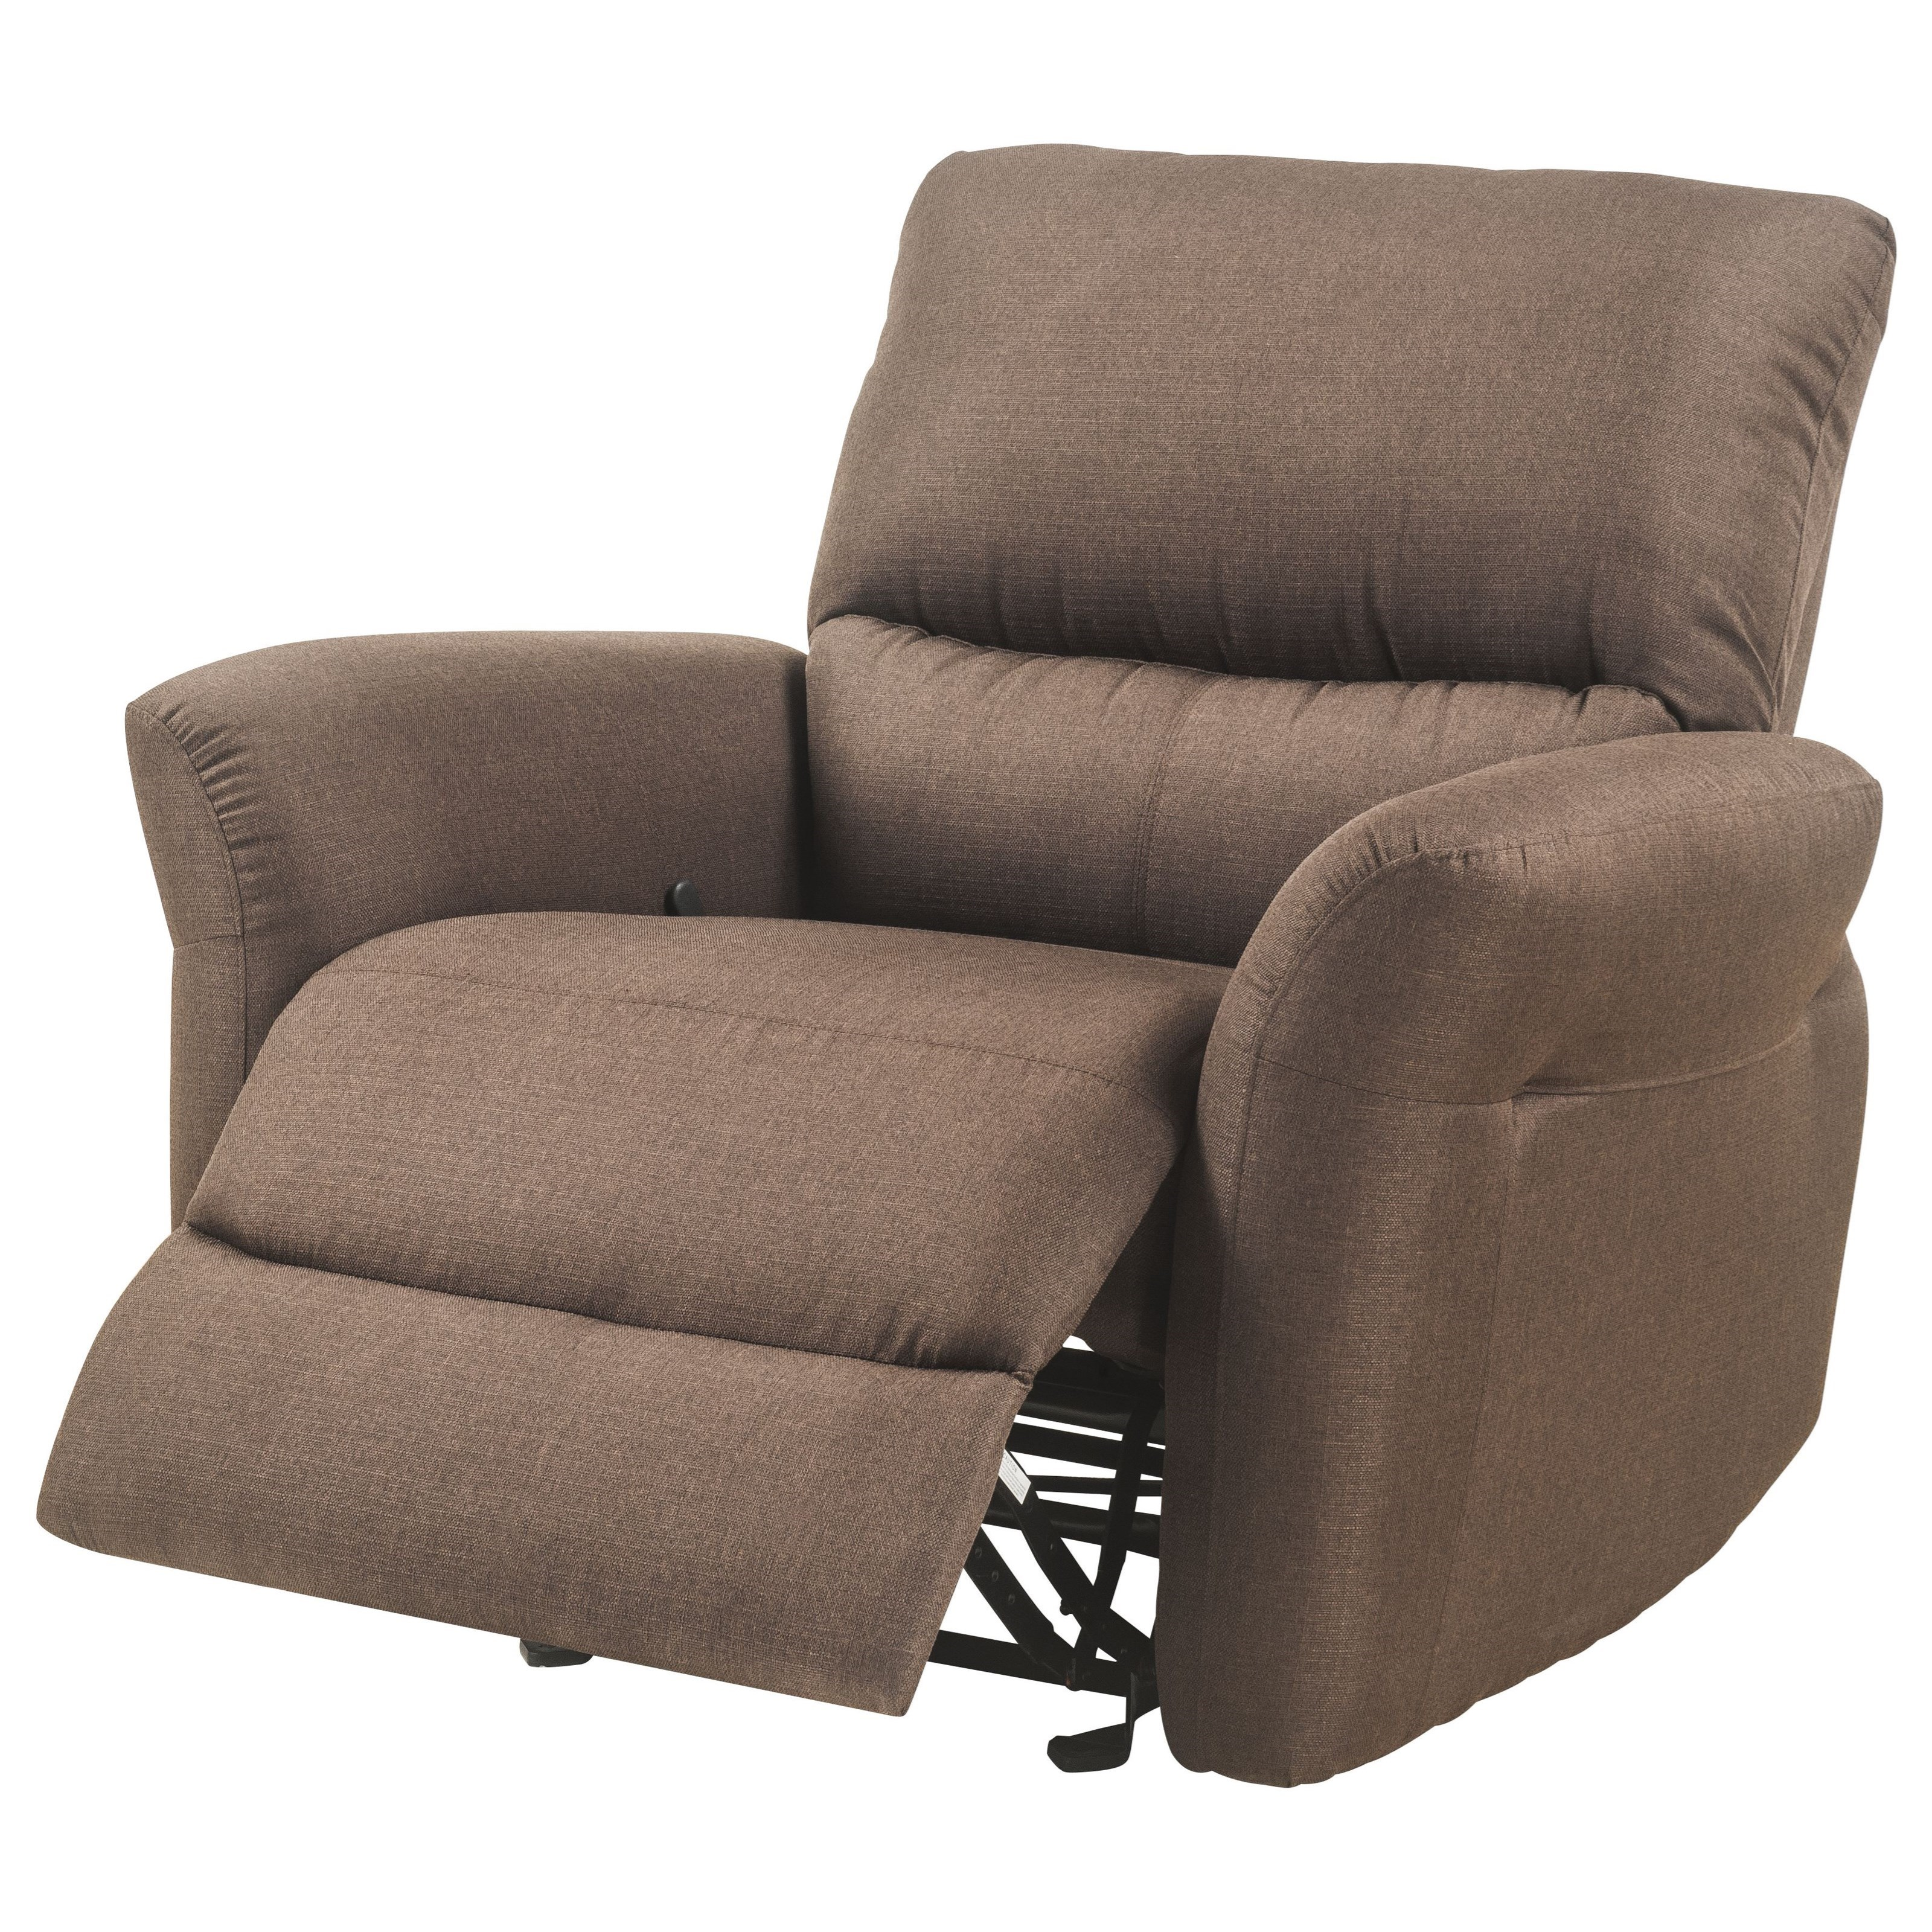 Alyssum Recliner (Motion) by Acme Furniture at Carolina Direct